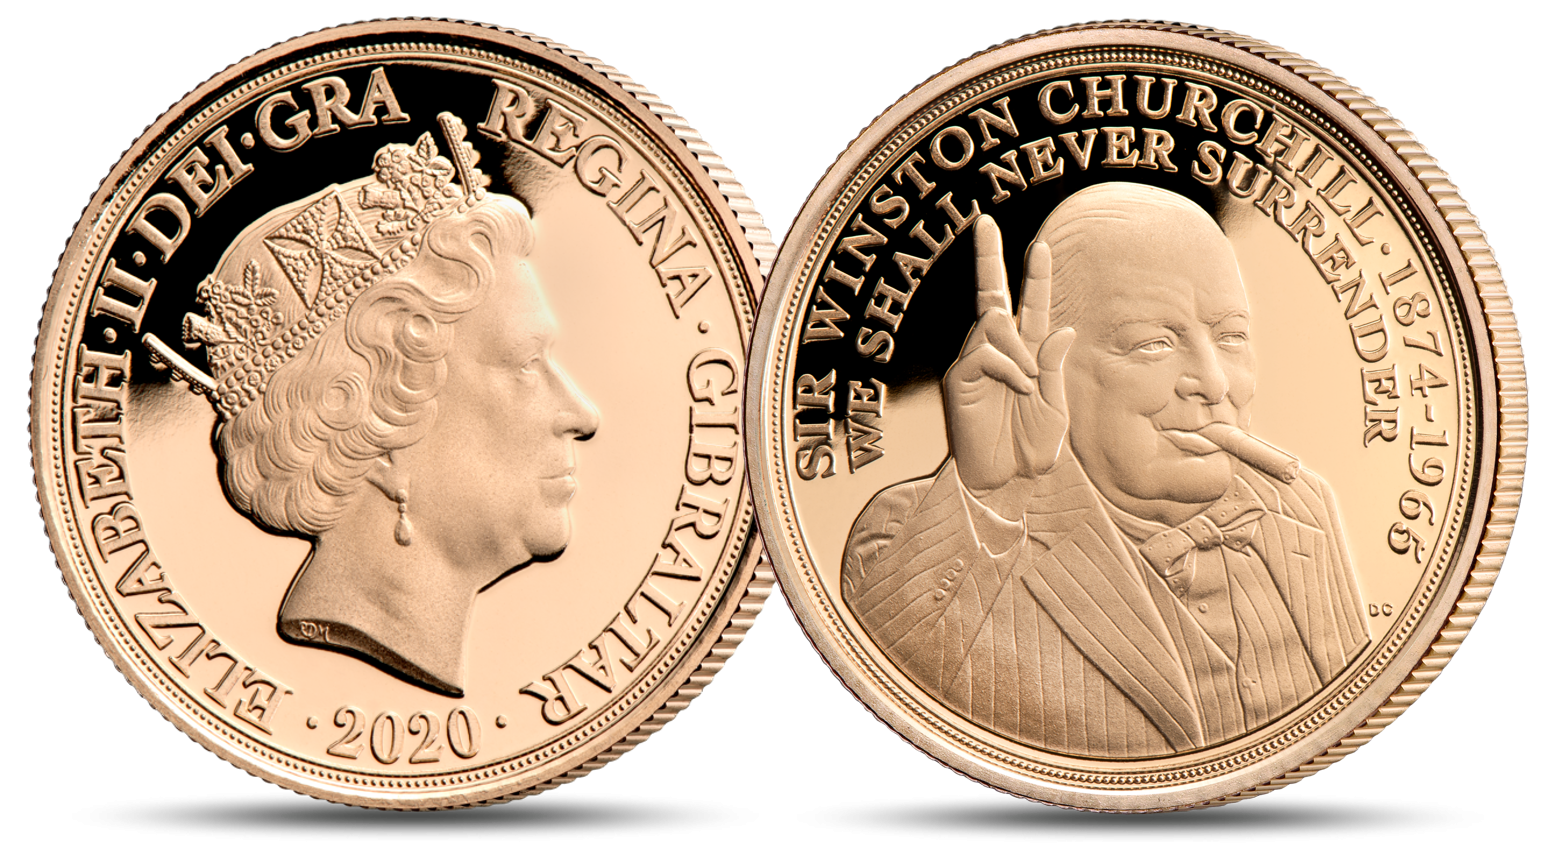 Churchill_Sovereign_Obverse_Reverse_2020